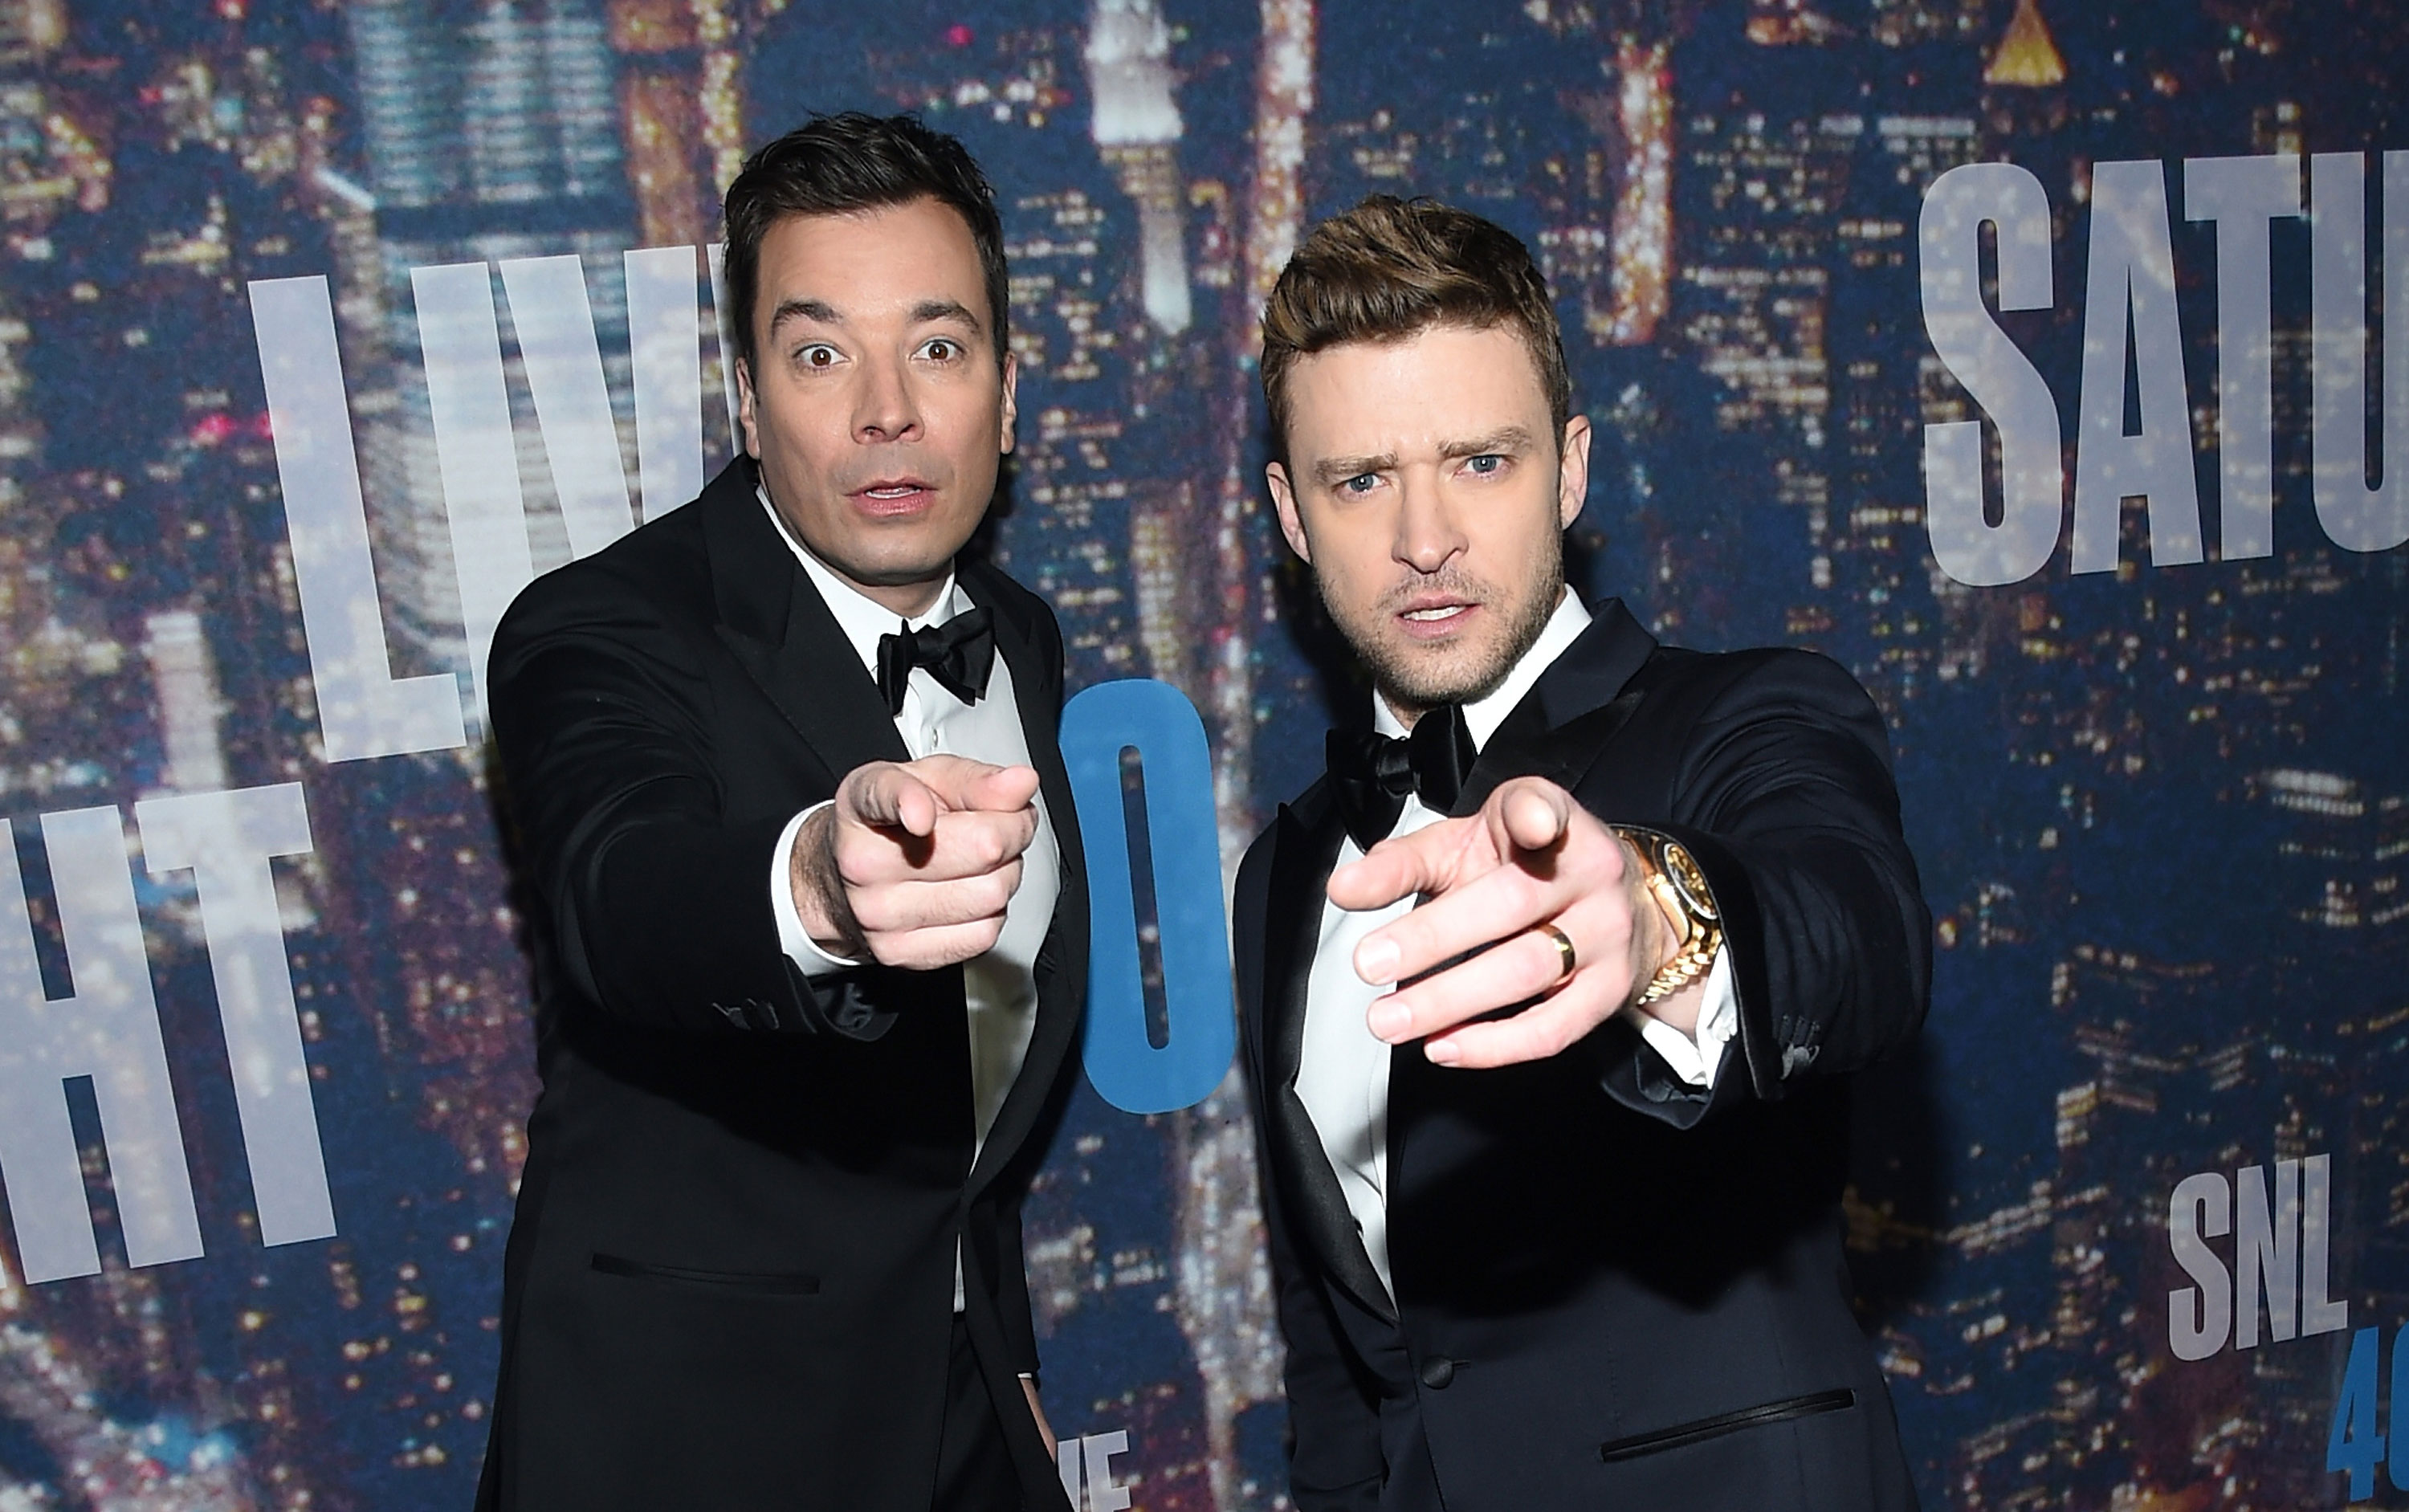 Jimmy Fallon & Justim Timberlake On SNL40